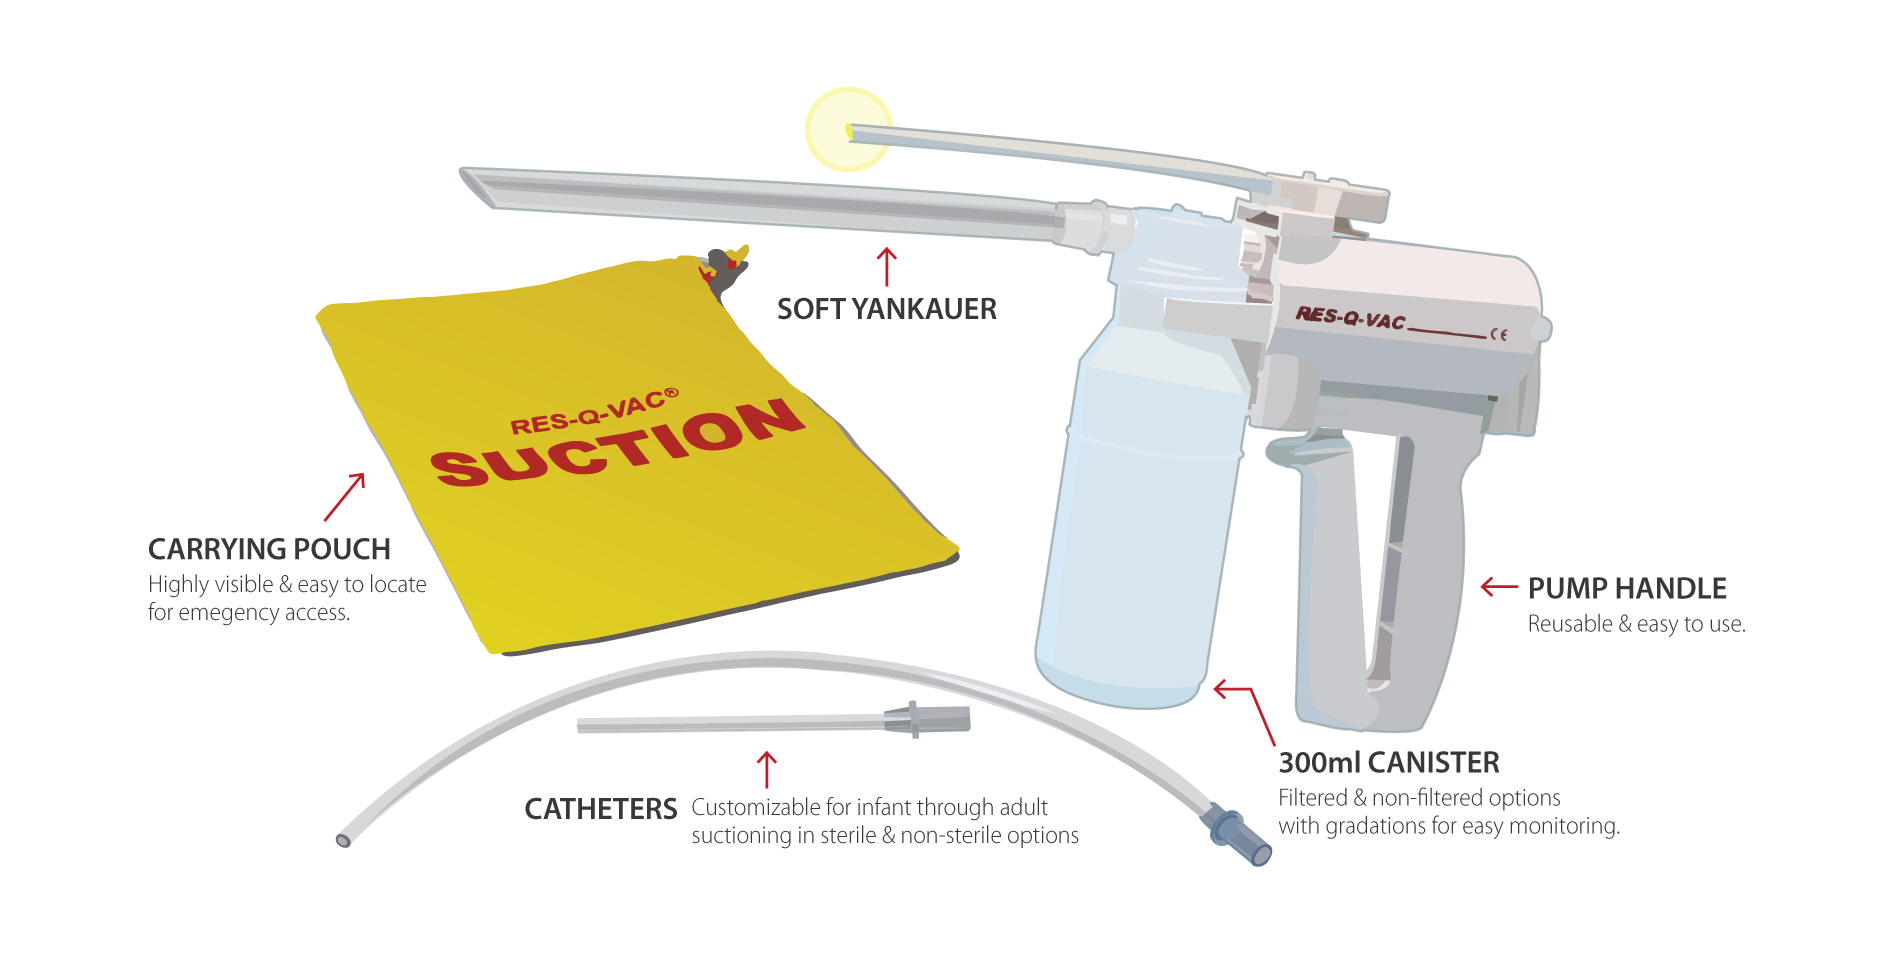 RES-Q-VAC® Hand-held Medical Suction Diagram